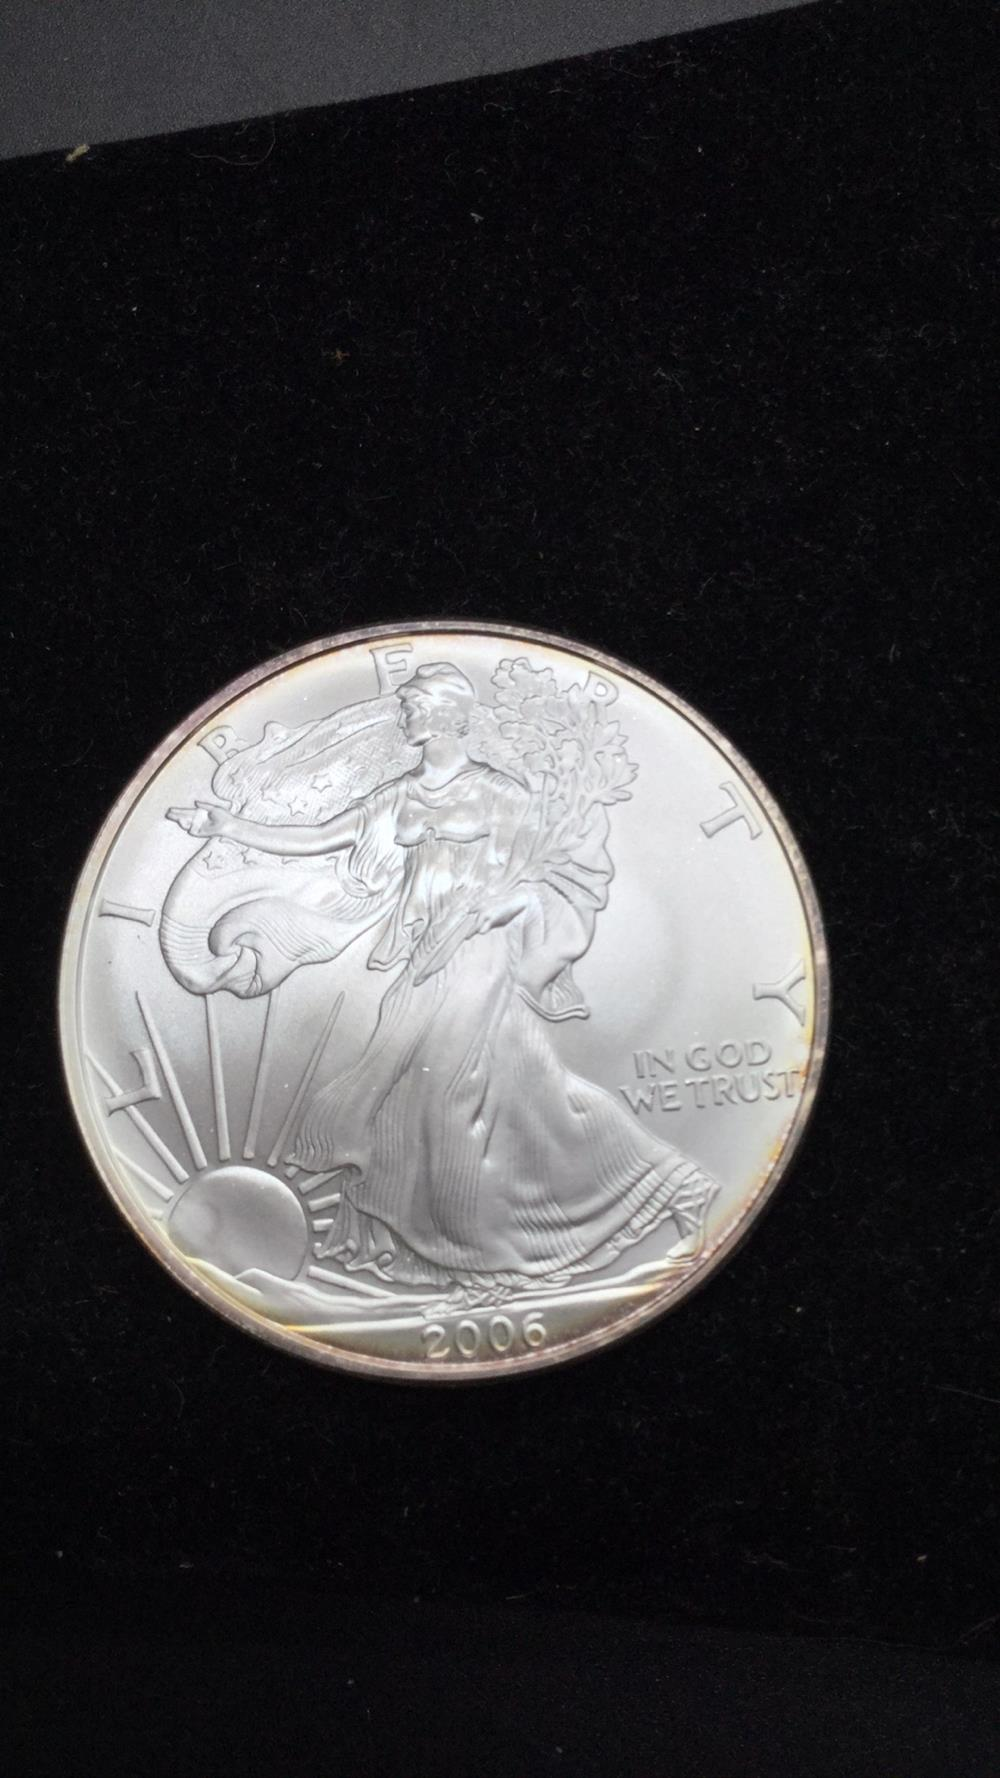 2006 American eagle dollar coin